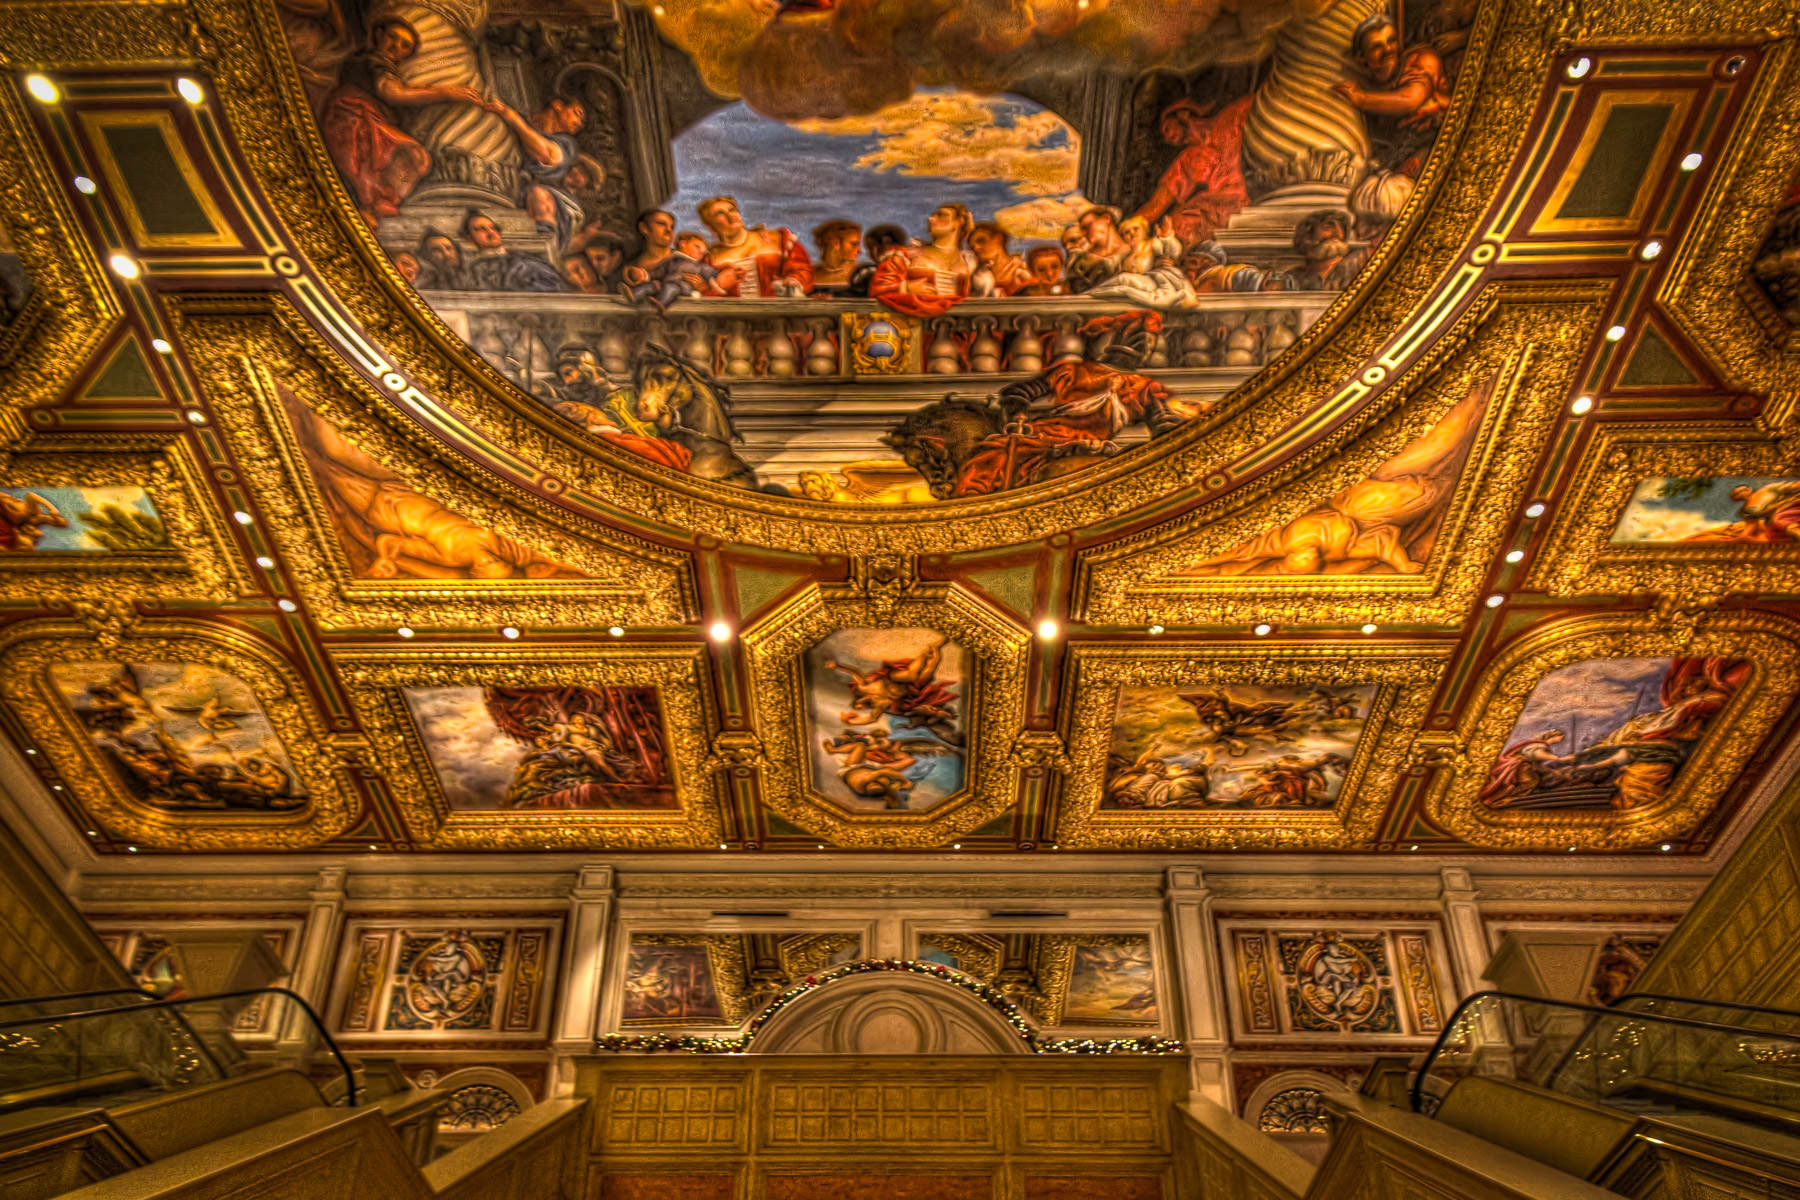 The intricately-detailed, hand-painted ceiling of the main lobby of The Venetian, Las Vegas.